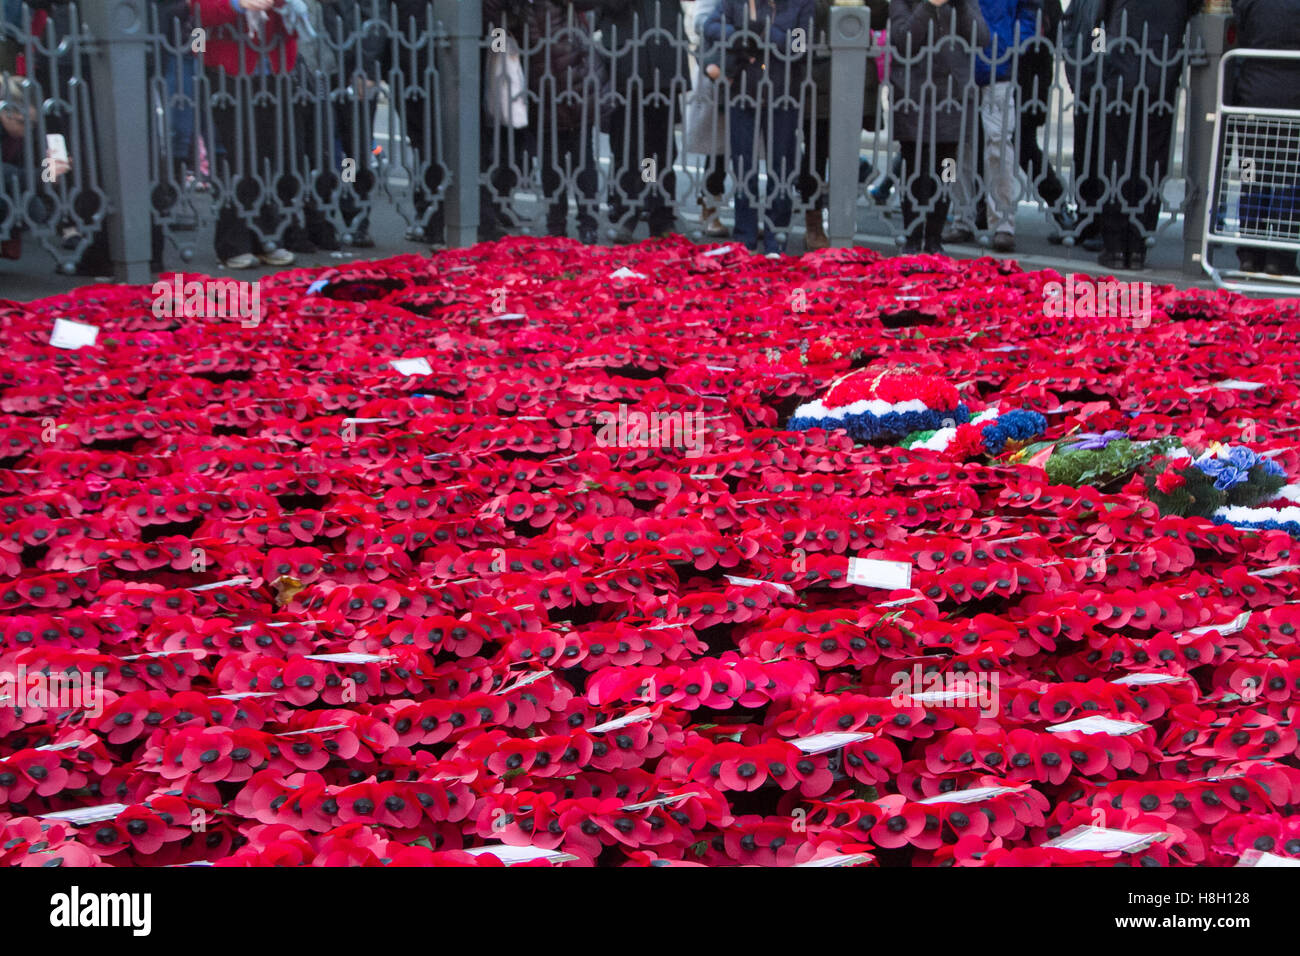 London UK.13th November 2016. Large crowds view the memorial wreaths placed around The Cenotaph during Remembrance Sunday by members of the Royal Family, Politicians and armed services Credit:  amer ghazzal/Alamy Live News Stock Photo